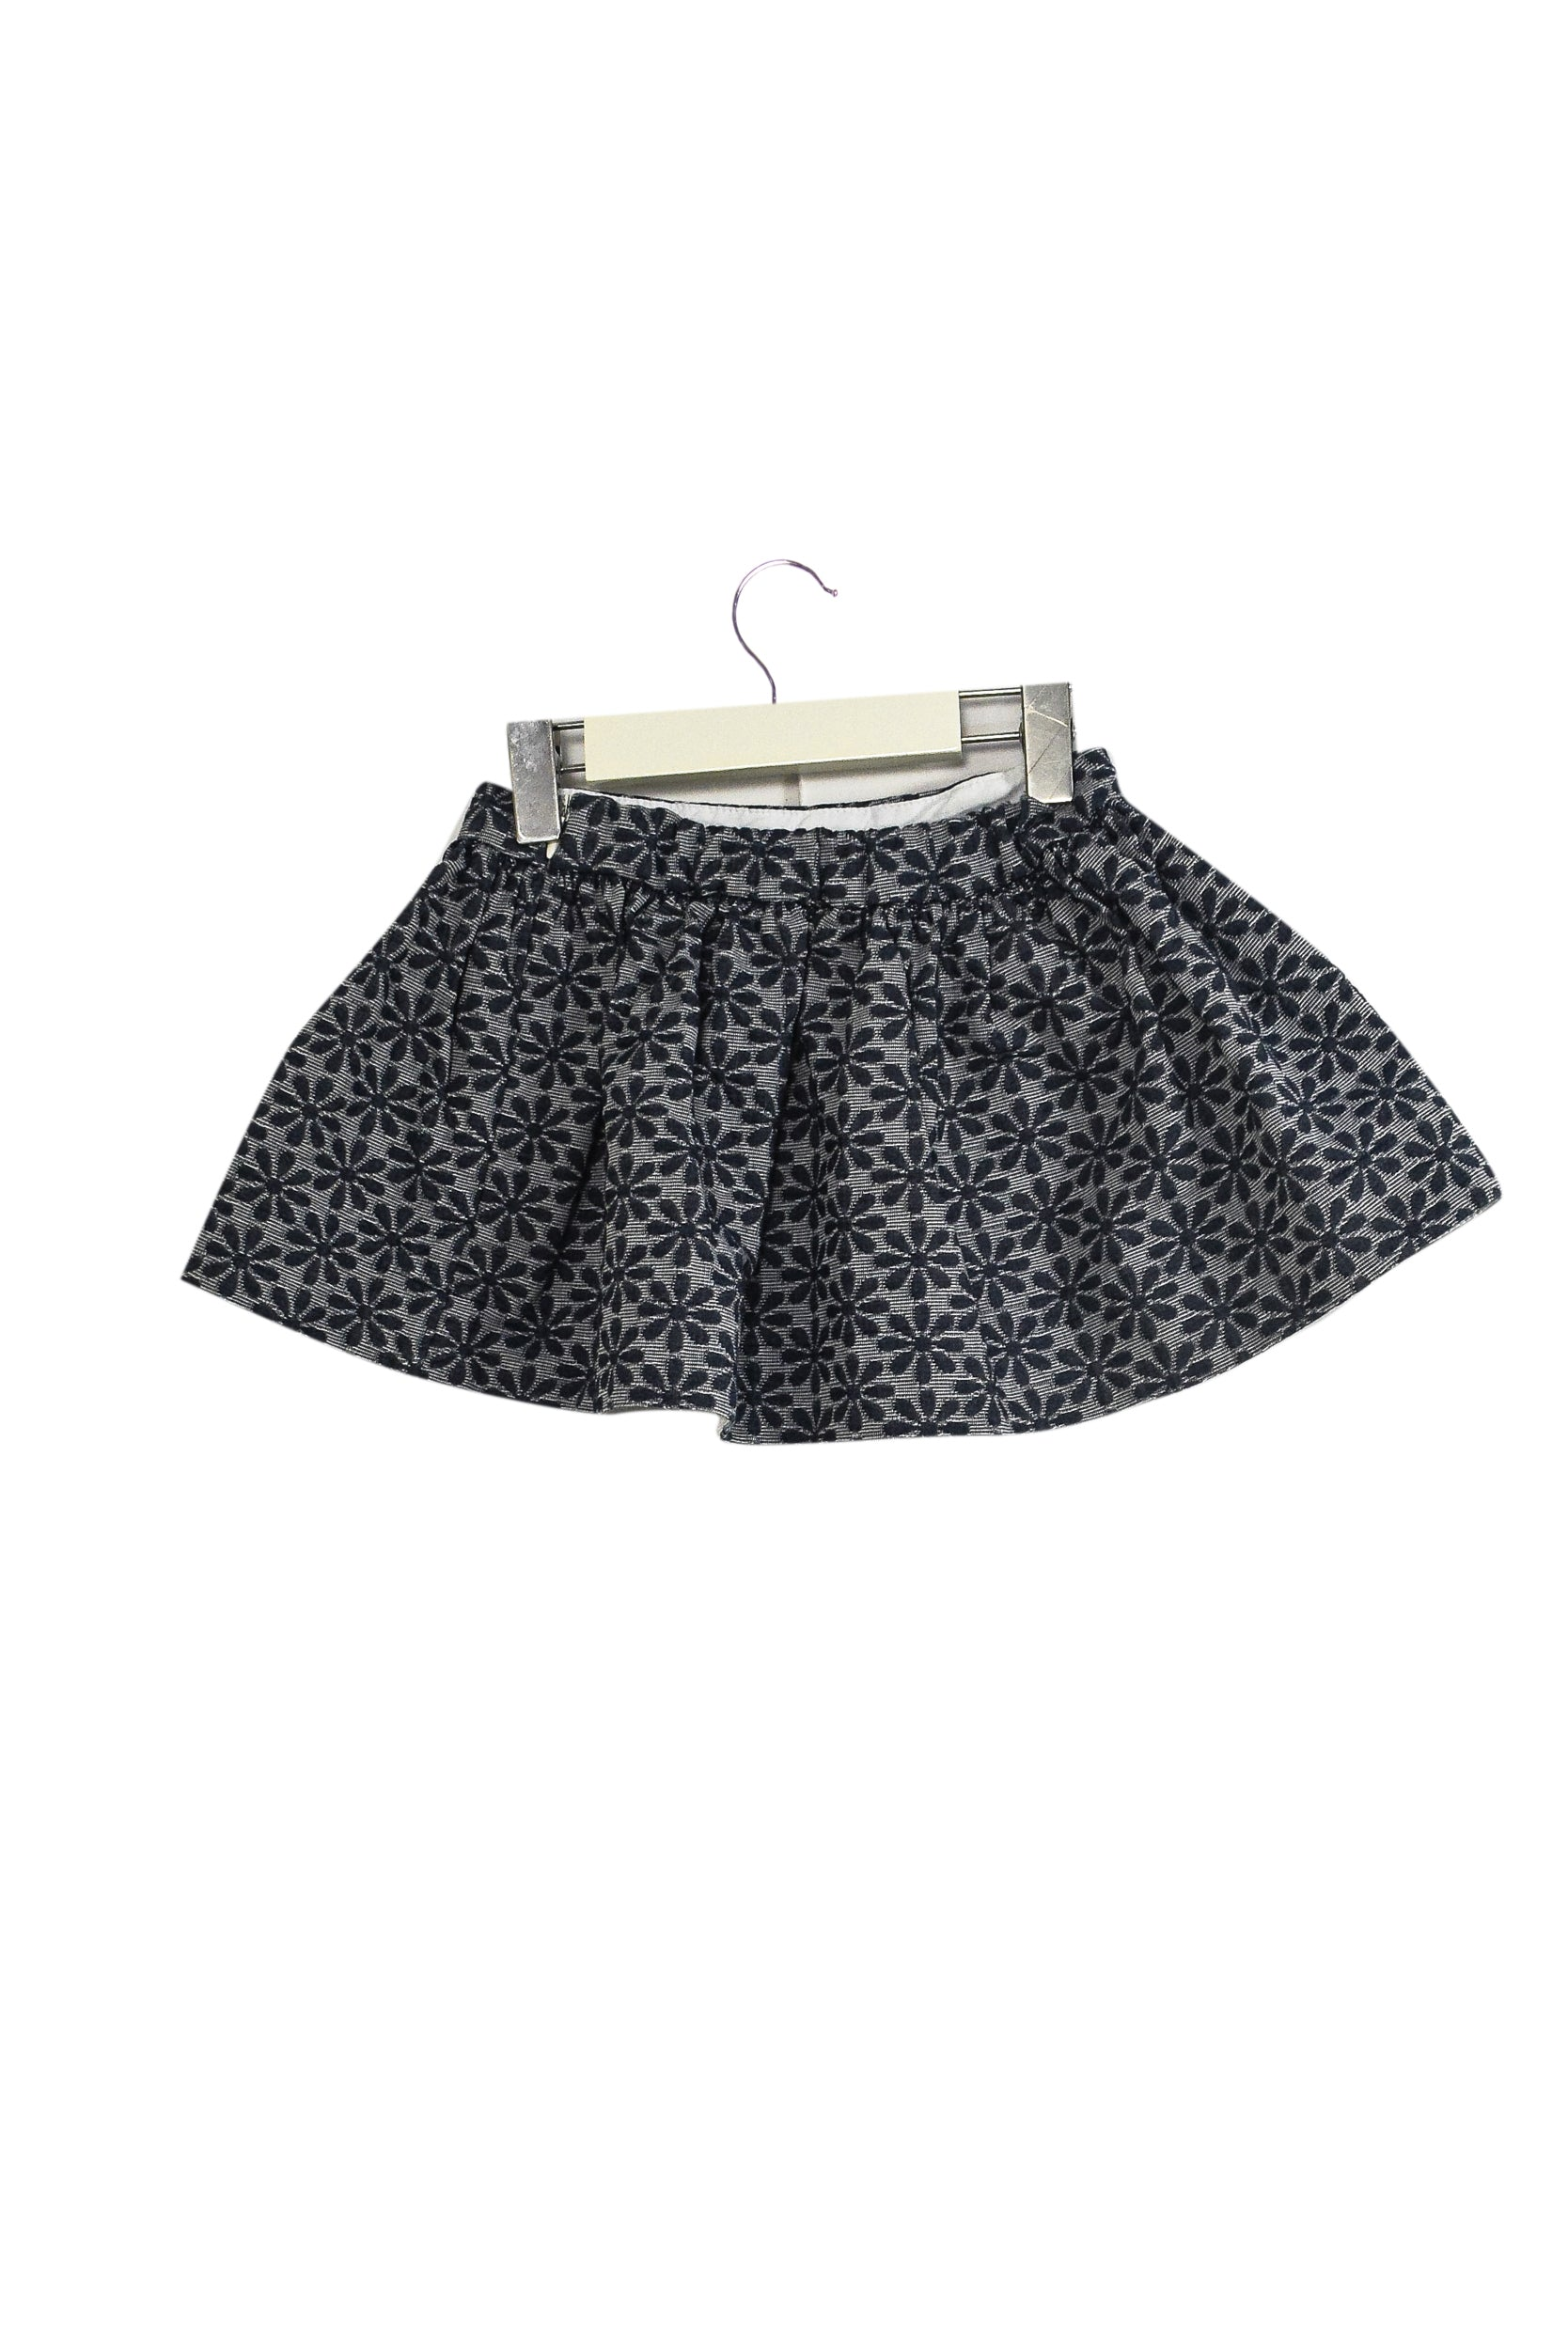 Short Skirt 3T at Retykle